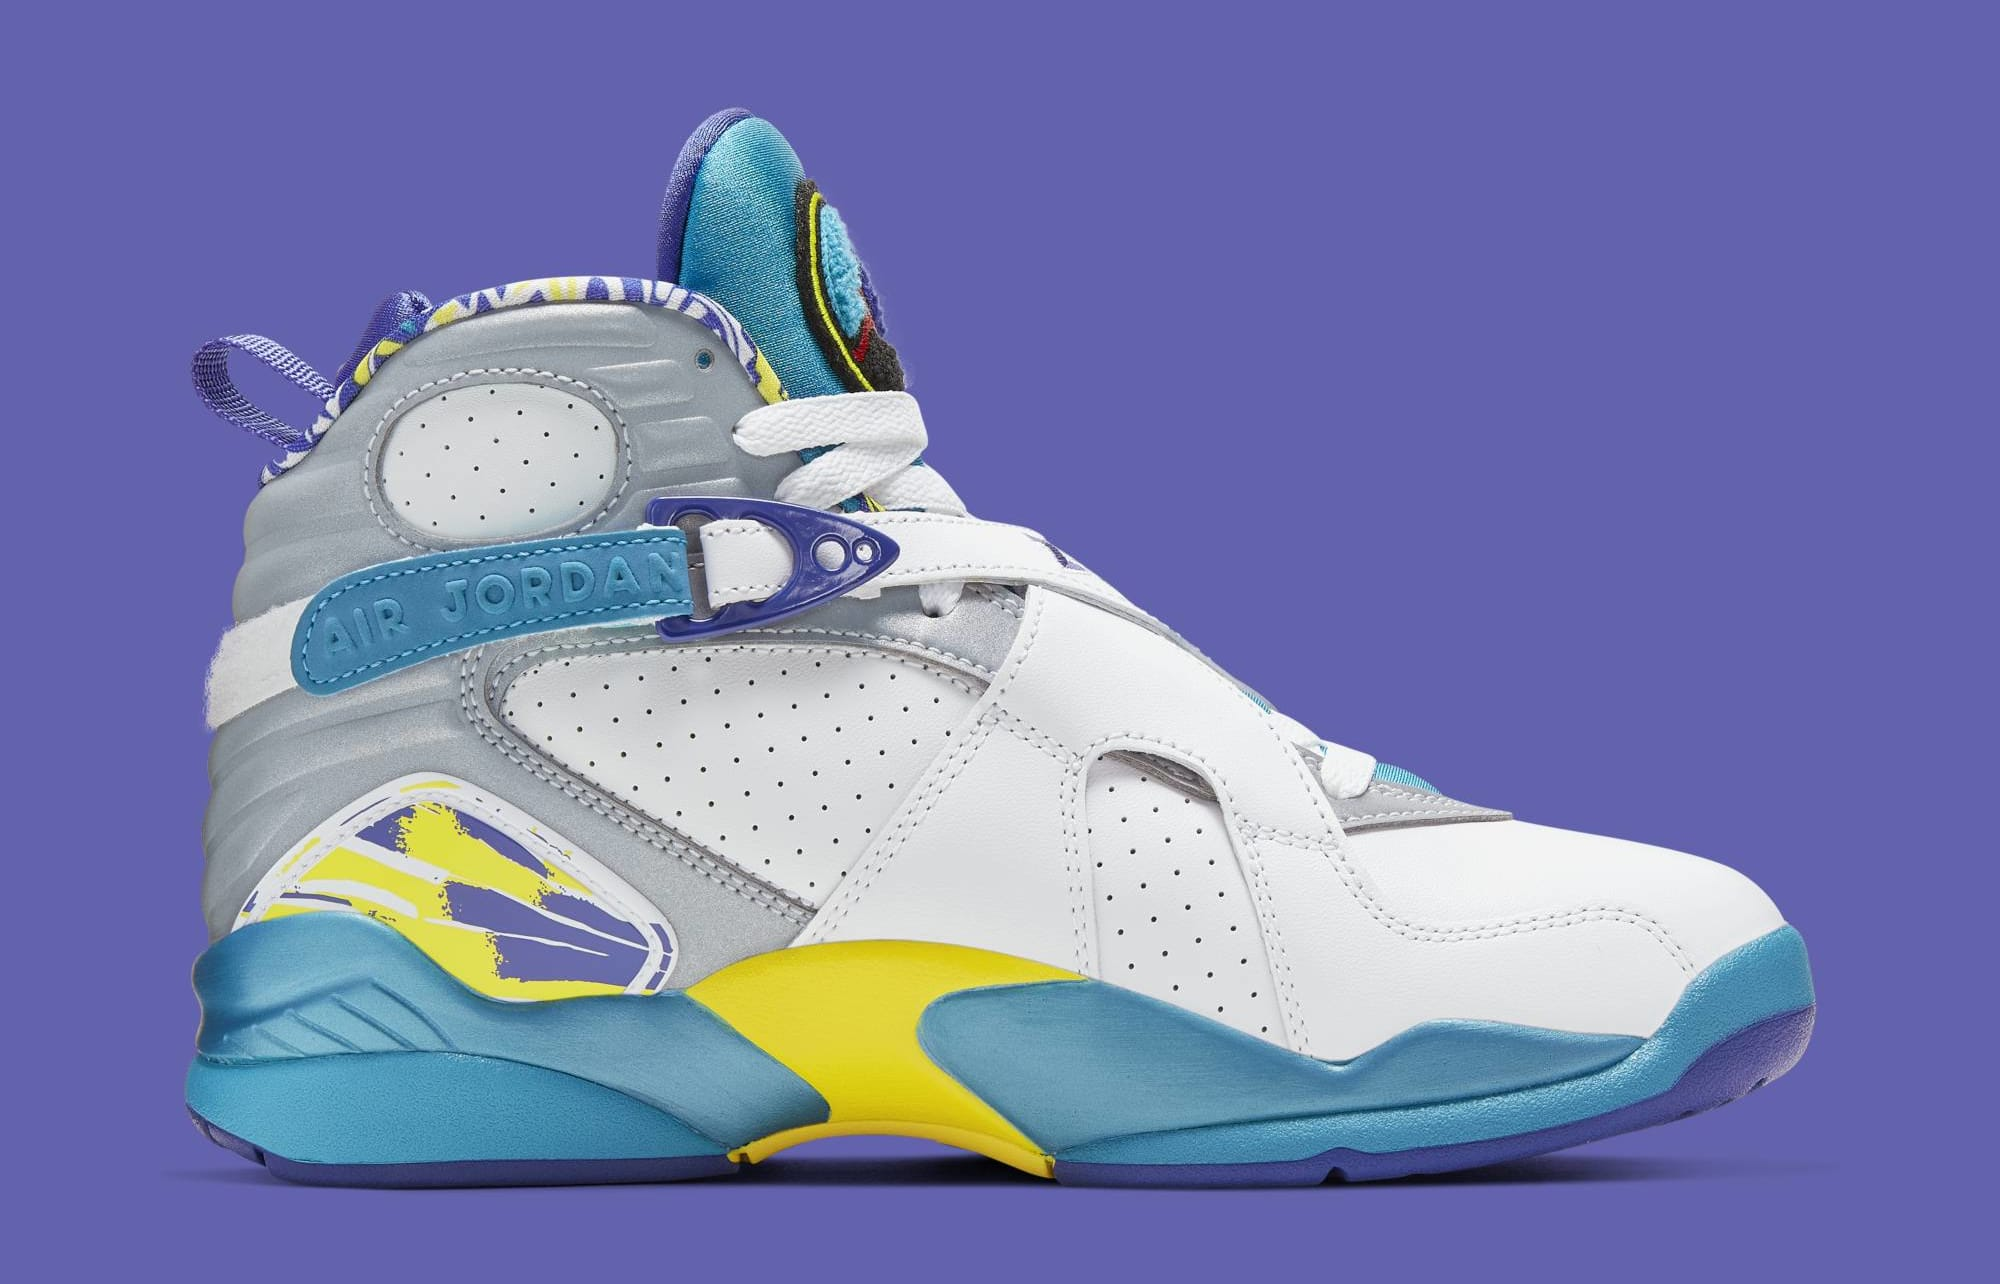 buy online 55c1f df7ae Air Jordan 8 Retro Women's 'Aqua' Release Date July 2019 ...